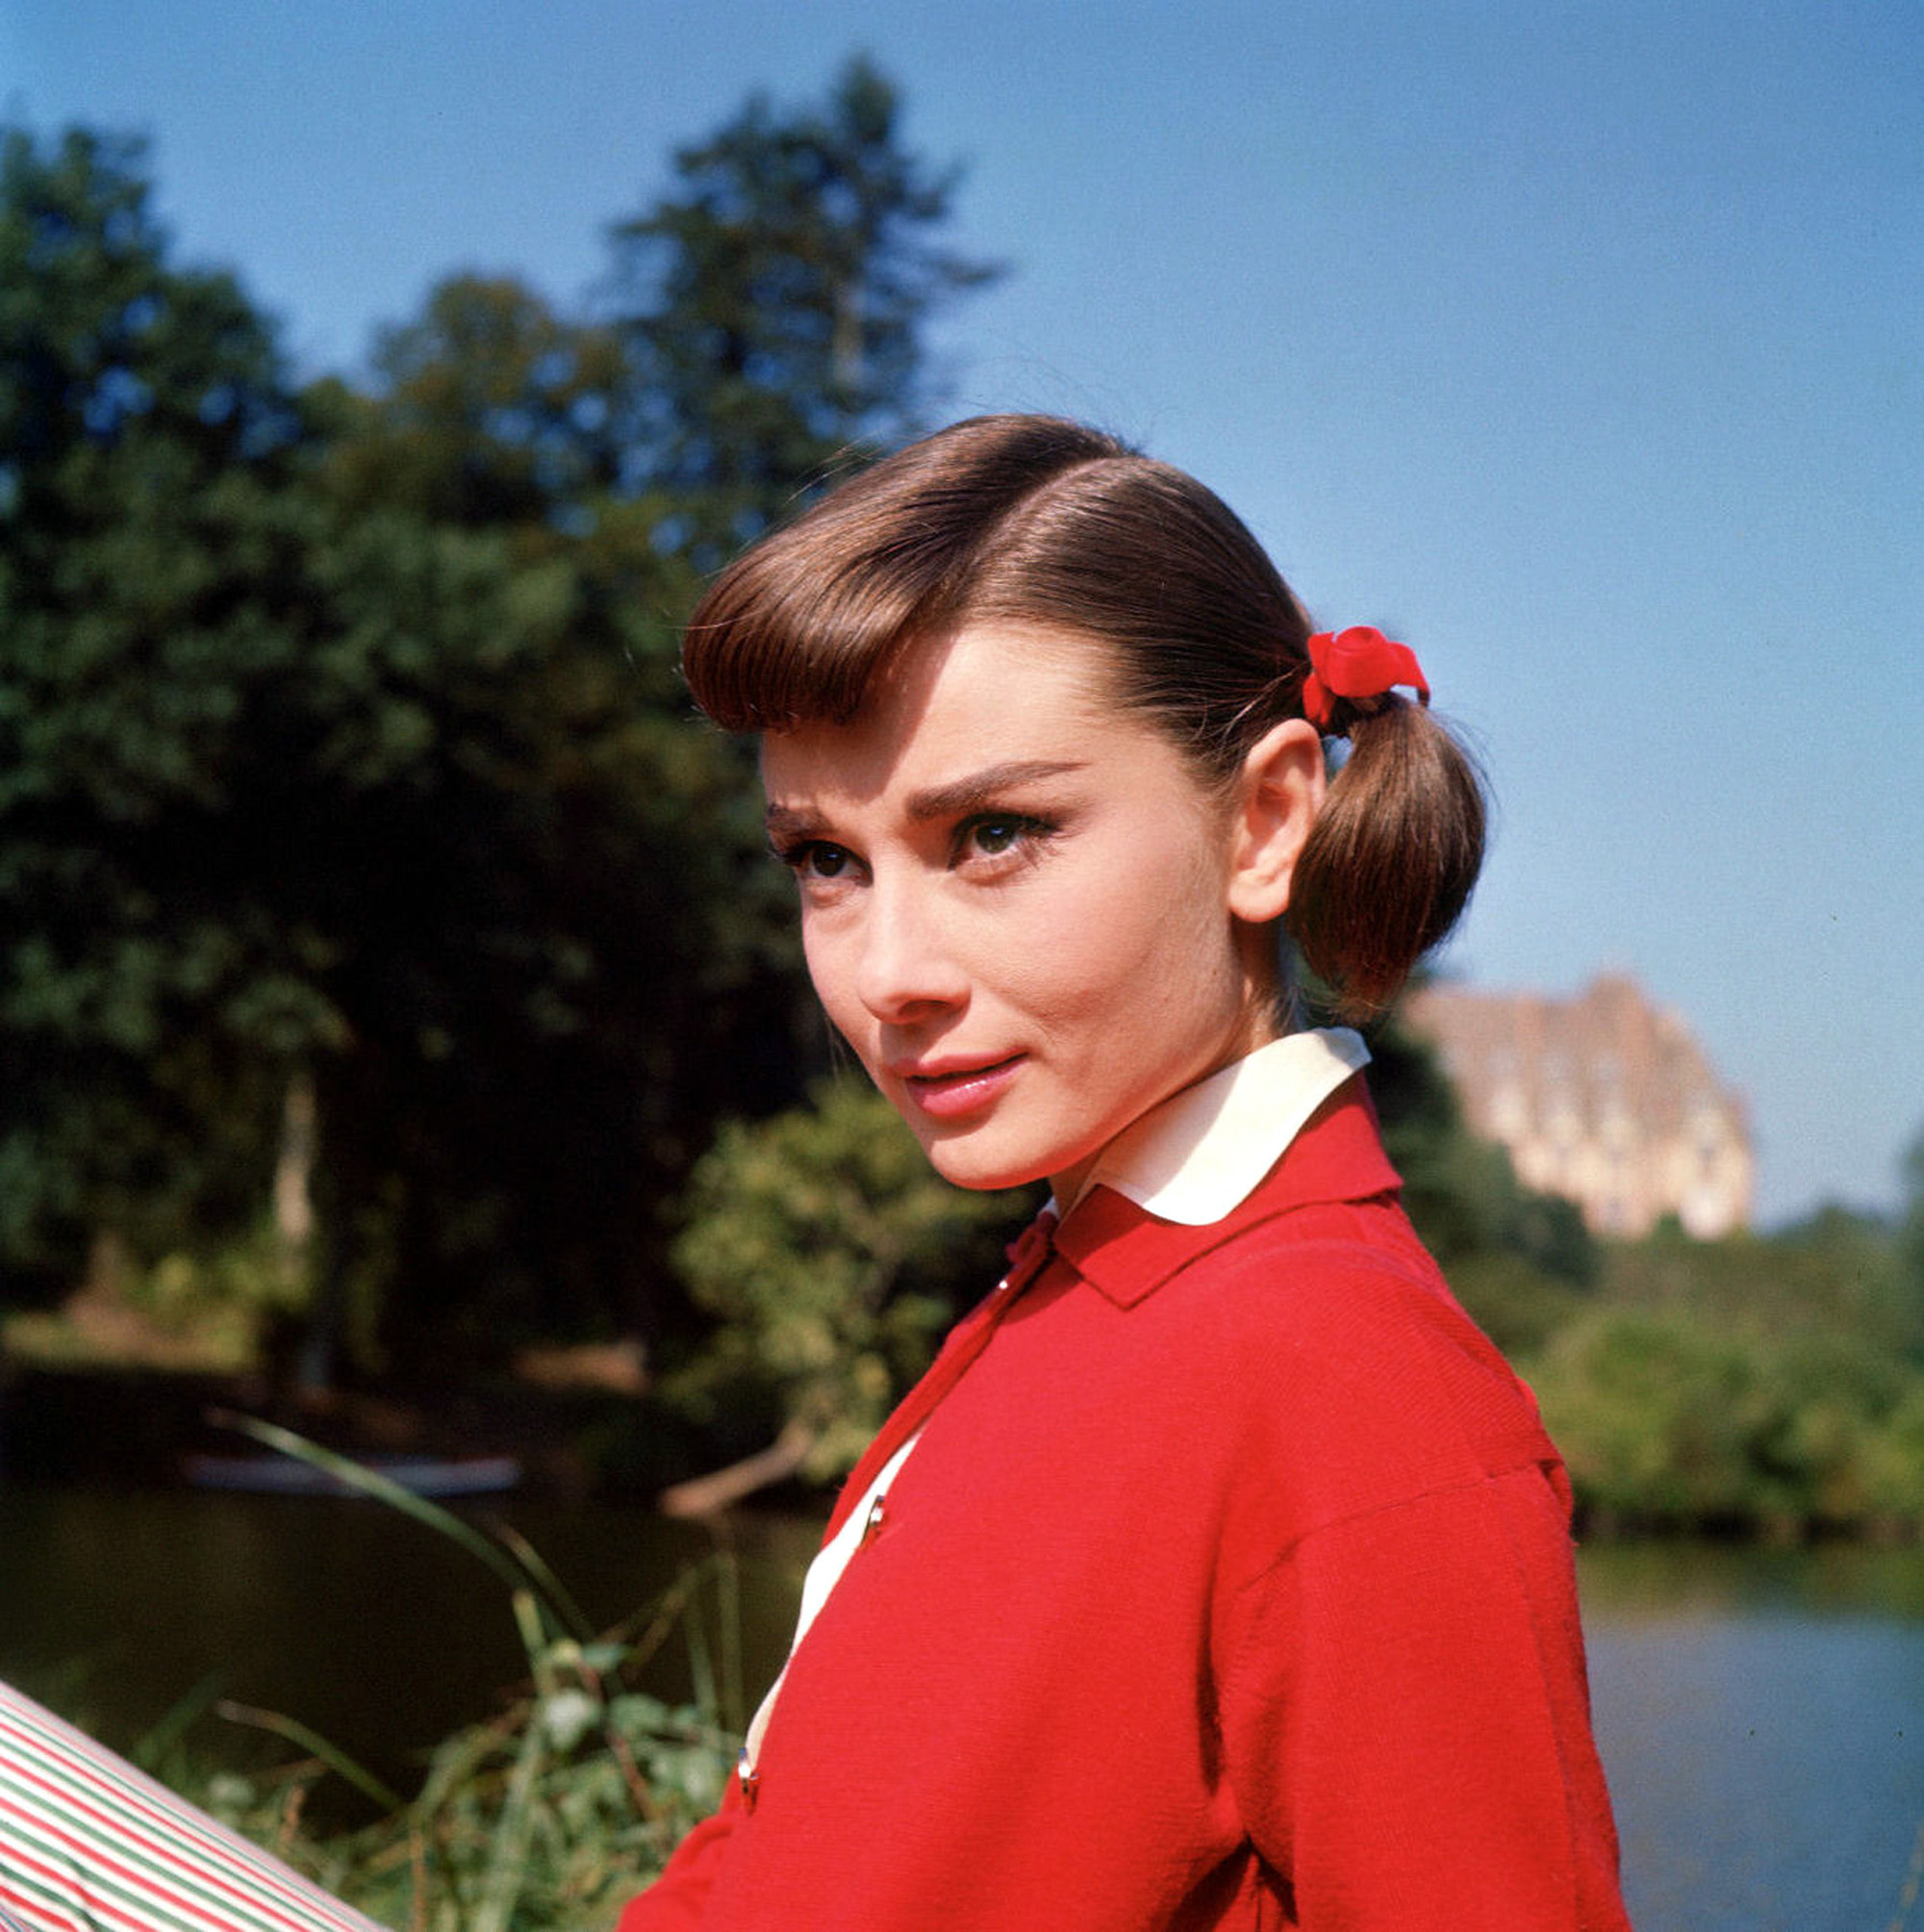 audrey hepburn love in the afternoon 1957 starring gary